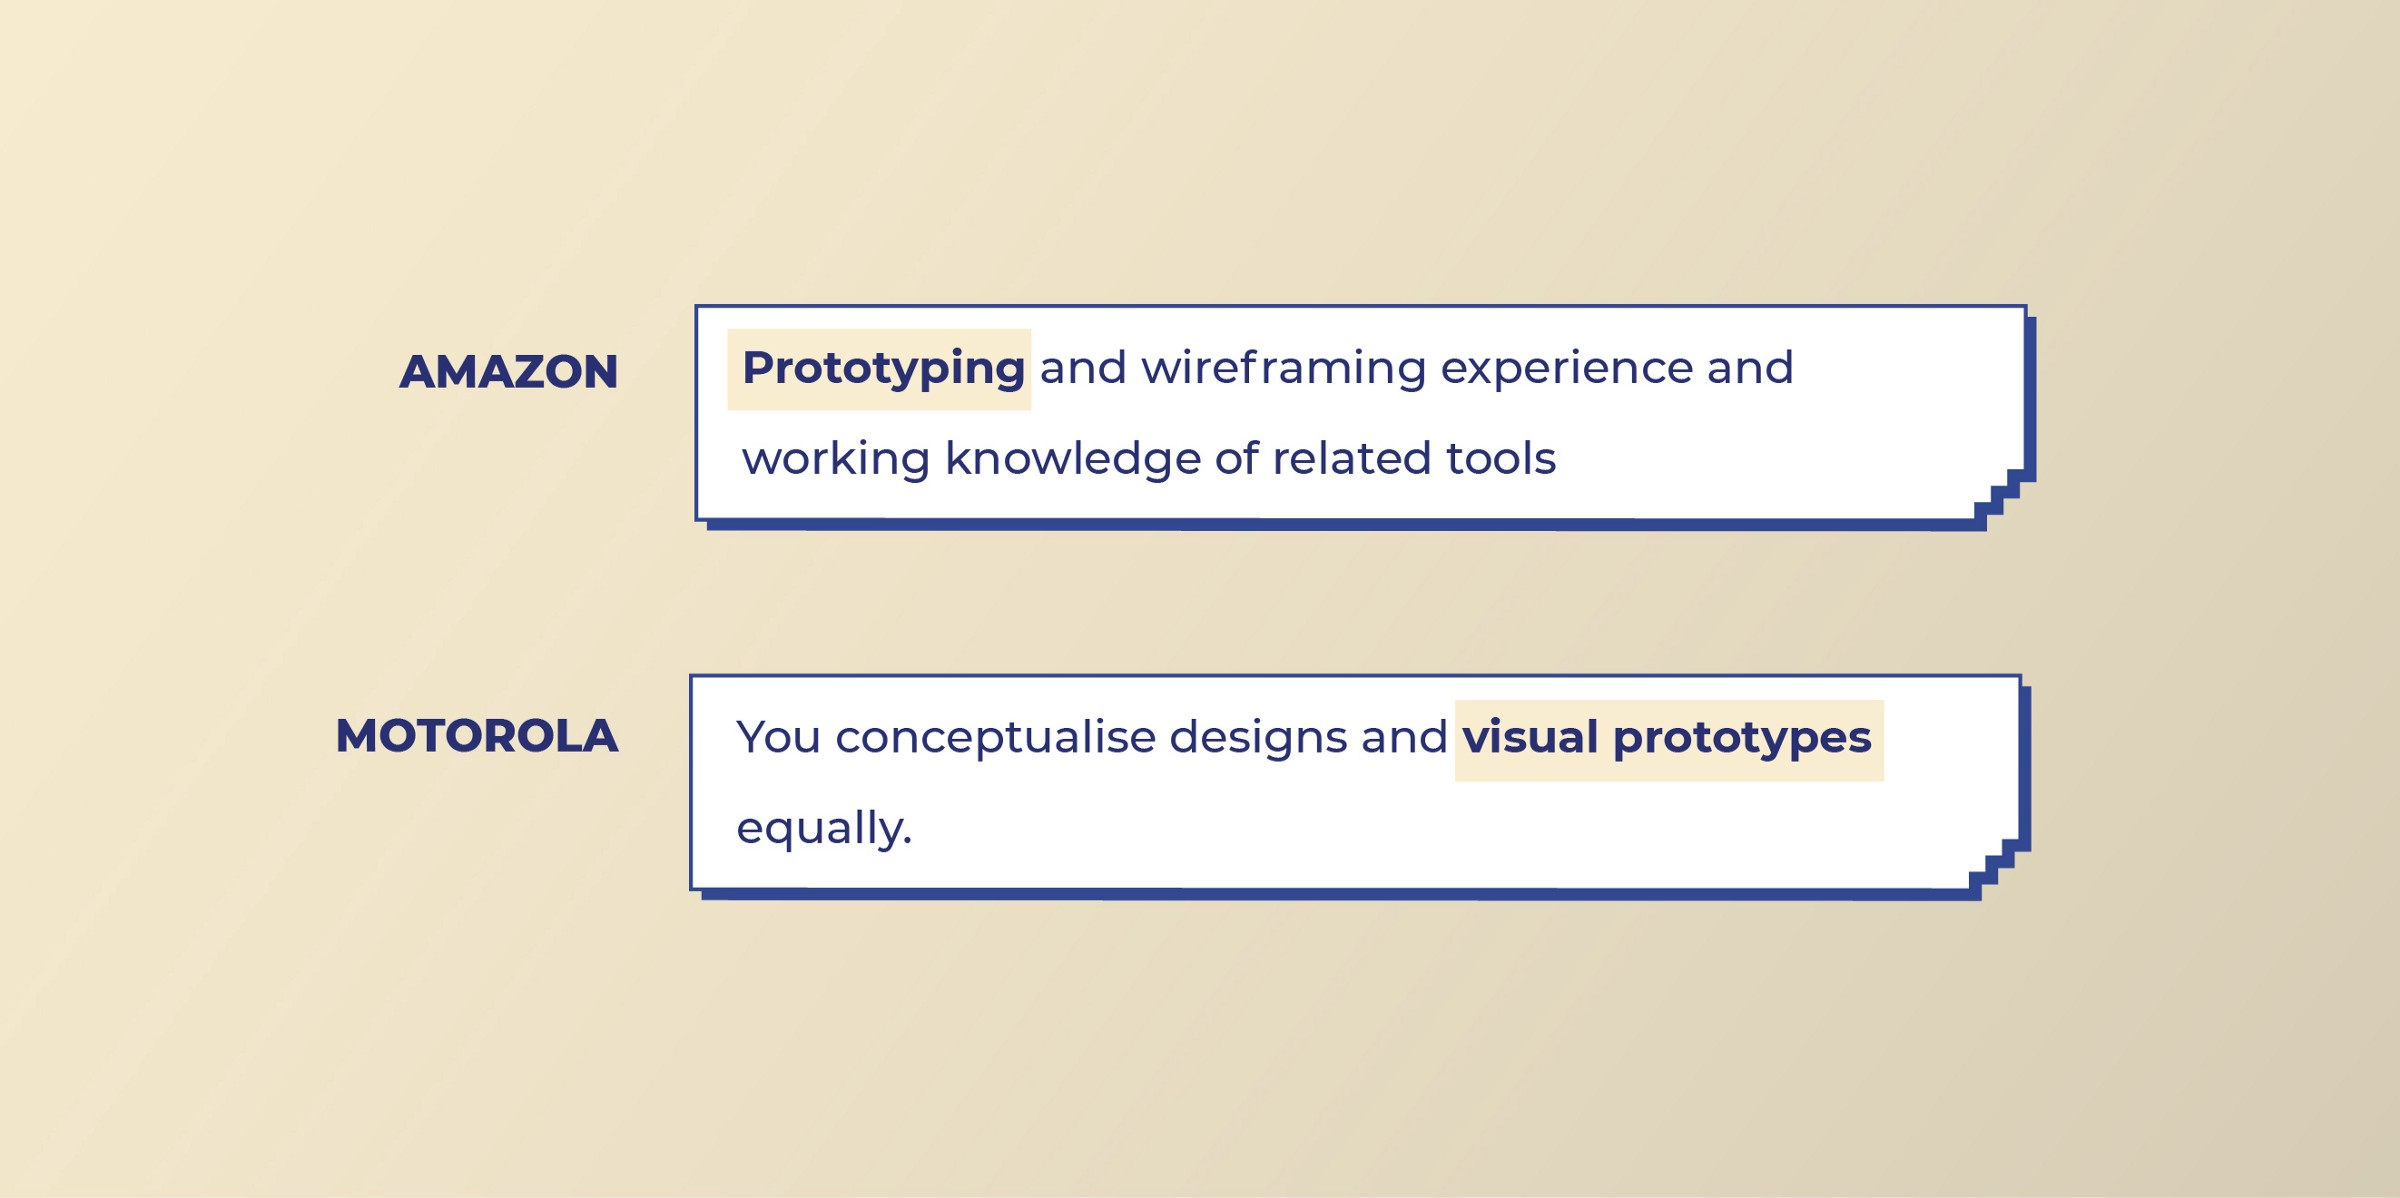 Amazon and Motorola look for Prototyping work from Visual designers